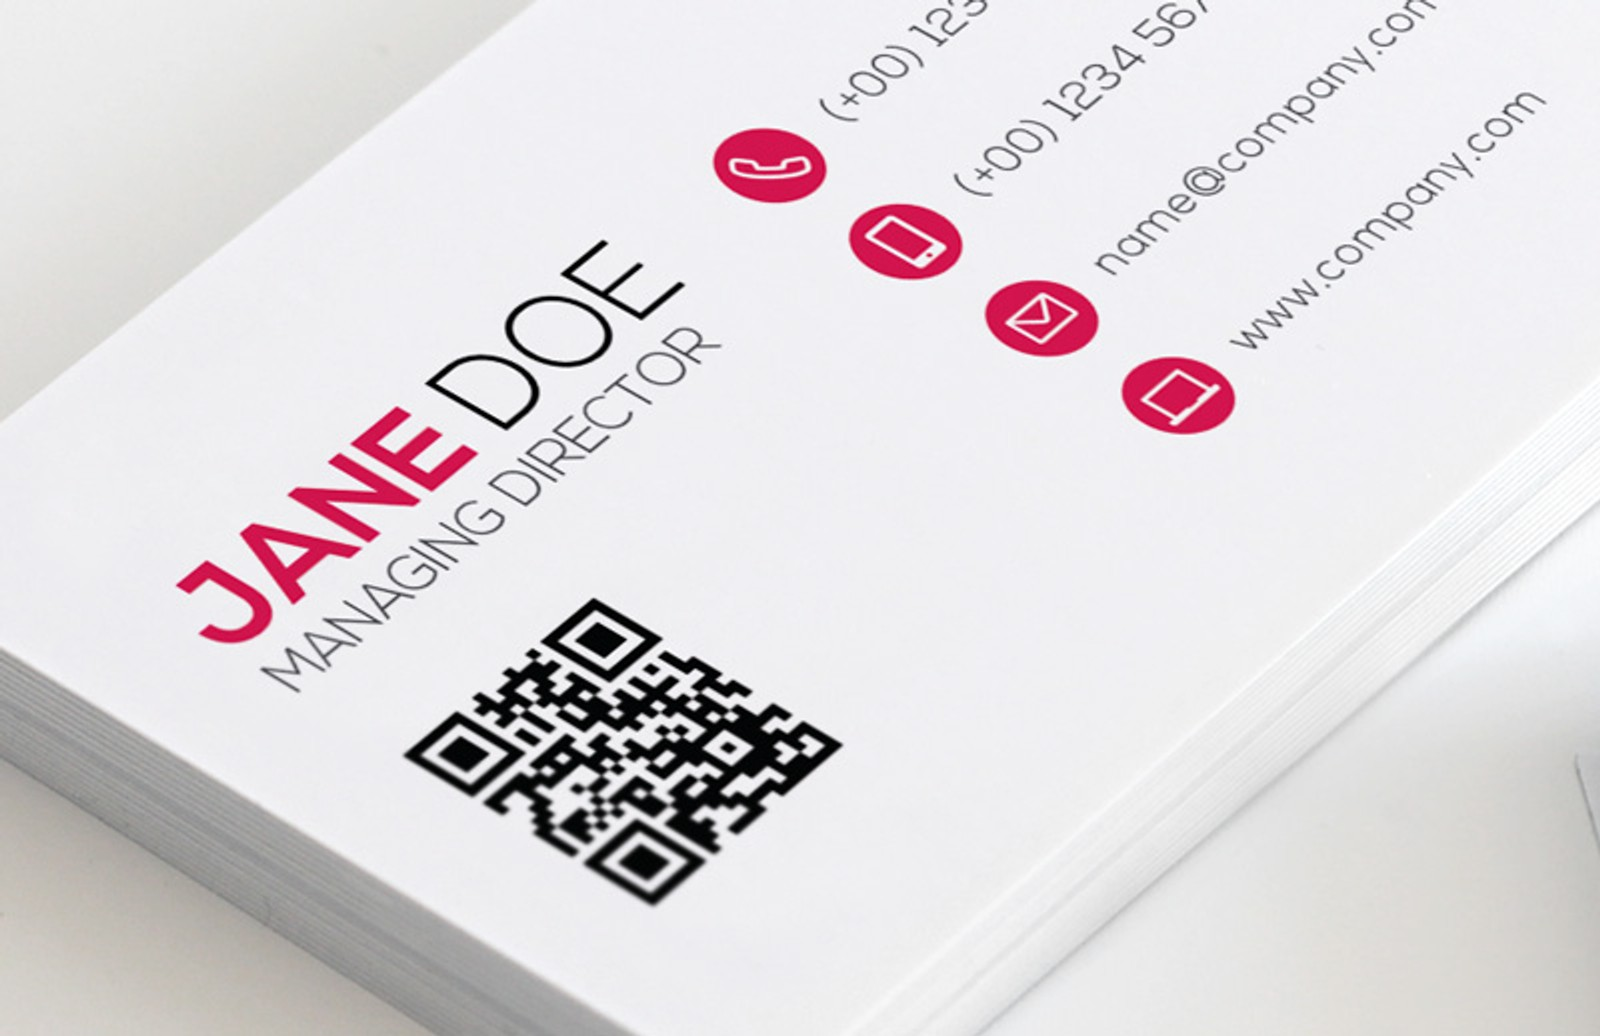 Qr code business card template vol 2 medialoot qr code business card vol 2 preview 1 reheart Image collections